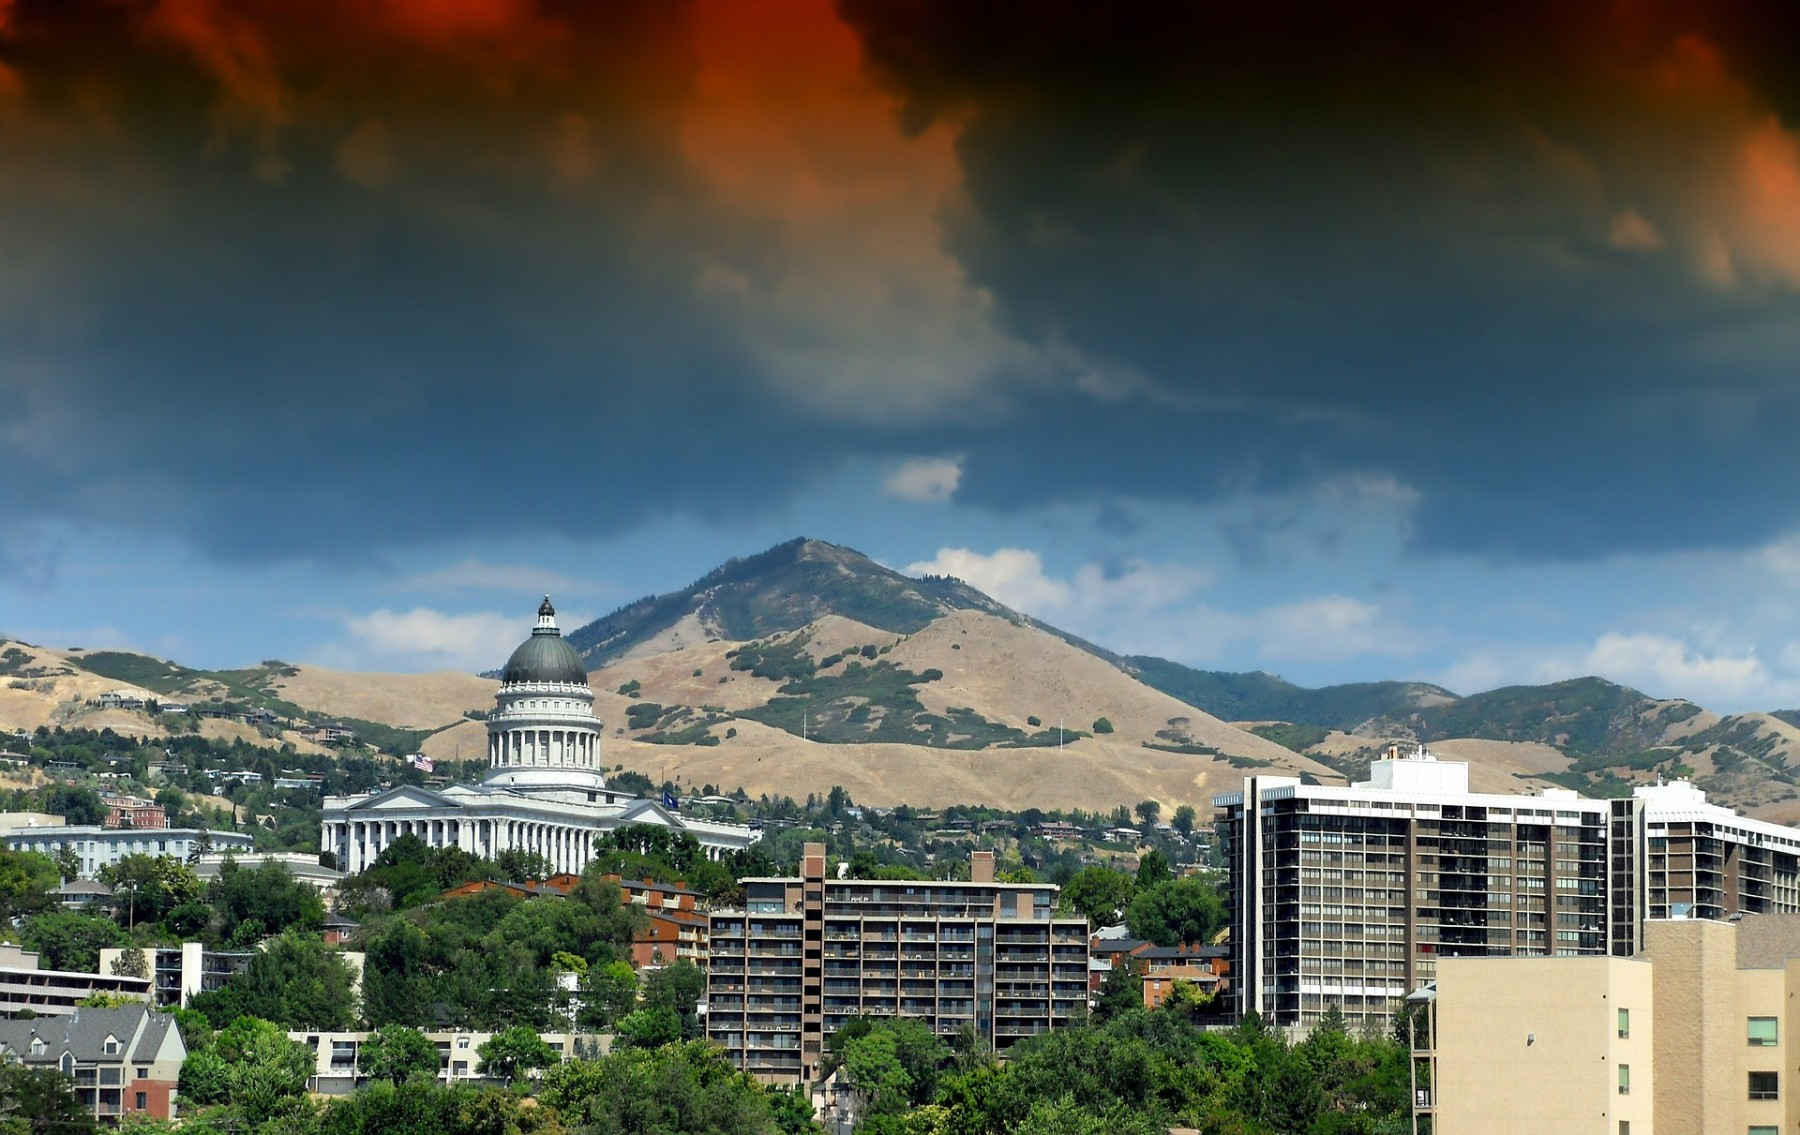 salt-lake-city-139714_1920